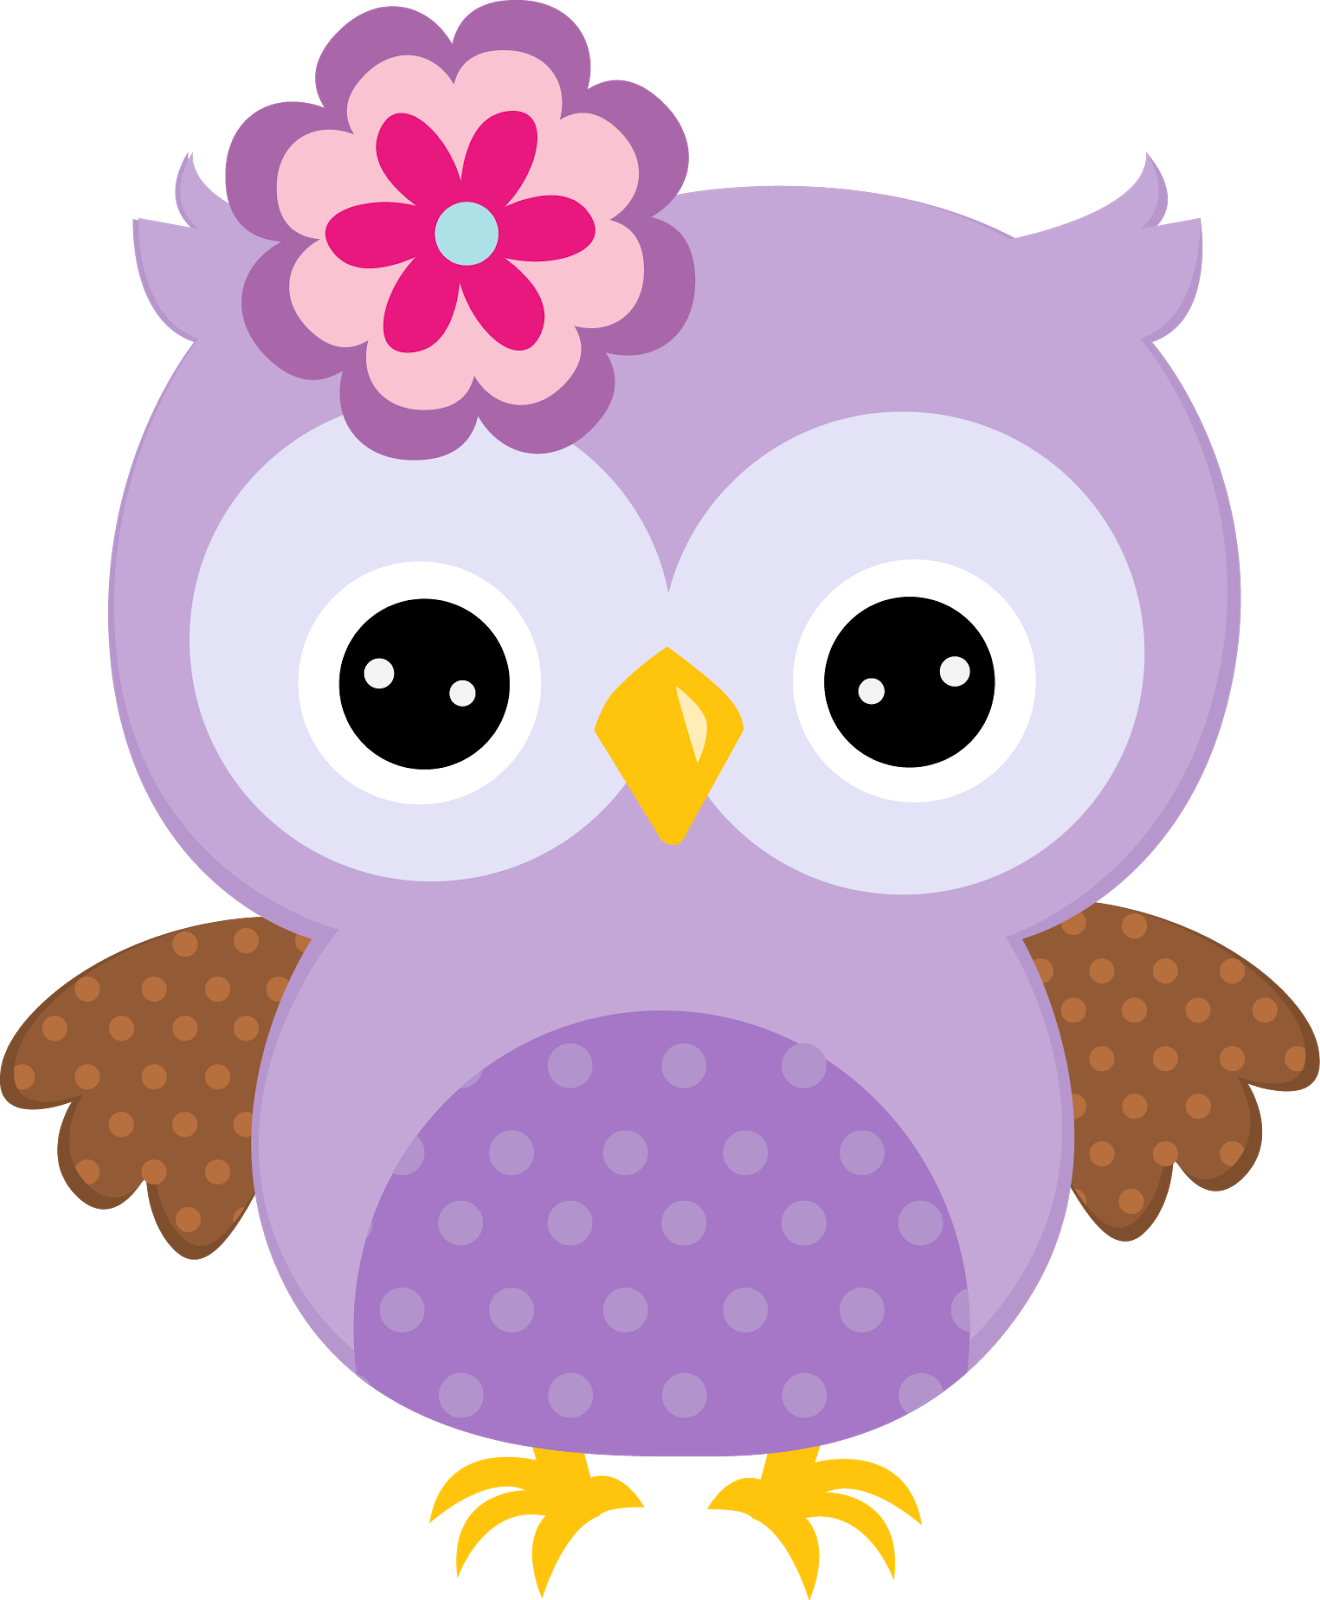 Lechuza clipart #17, Download drawings